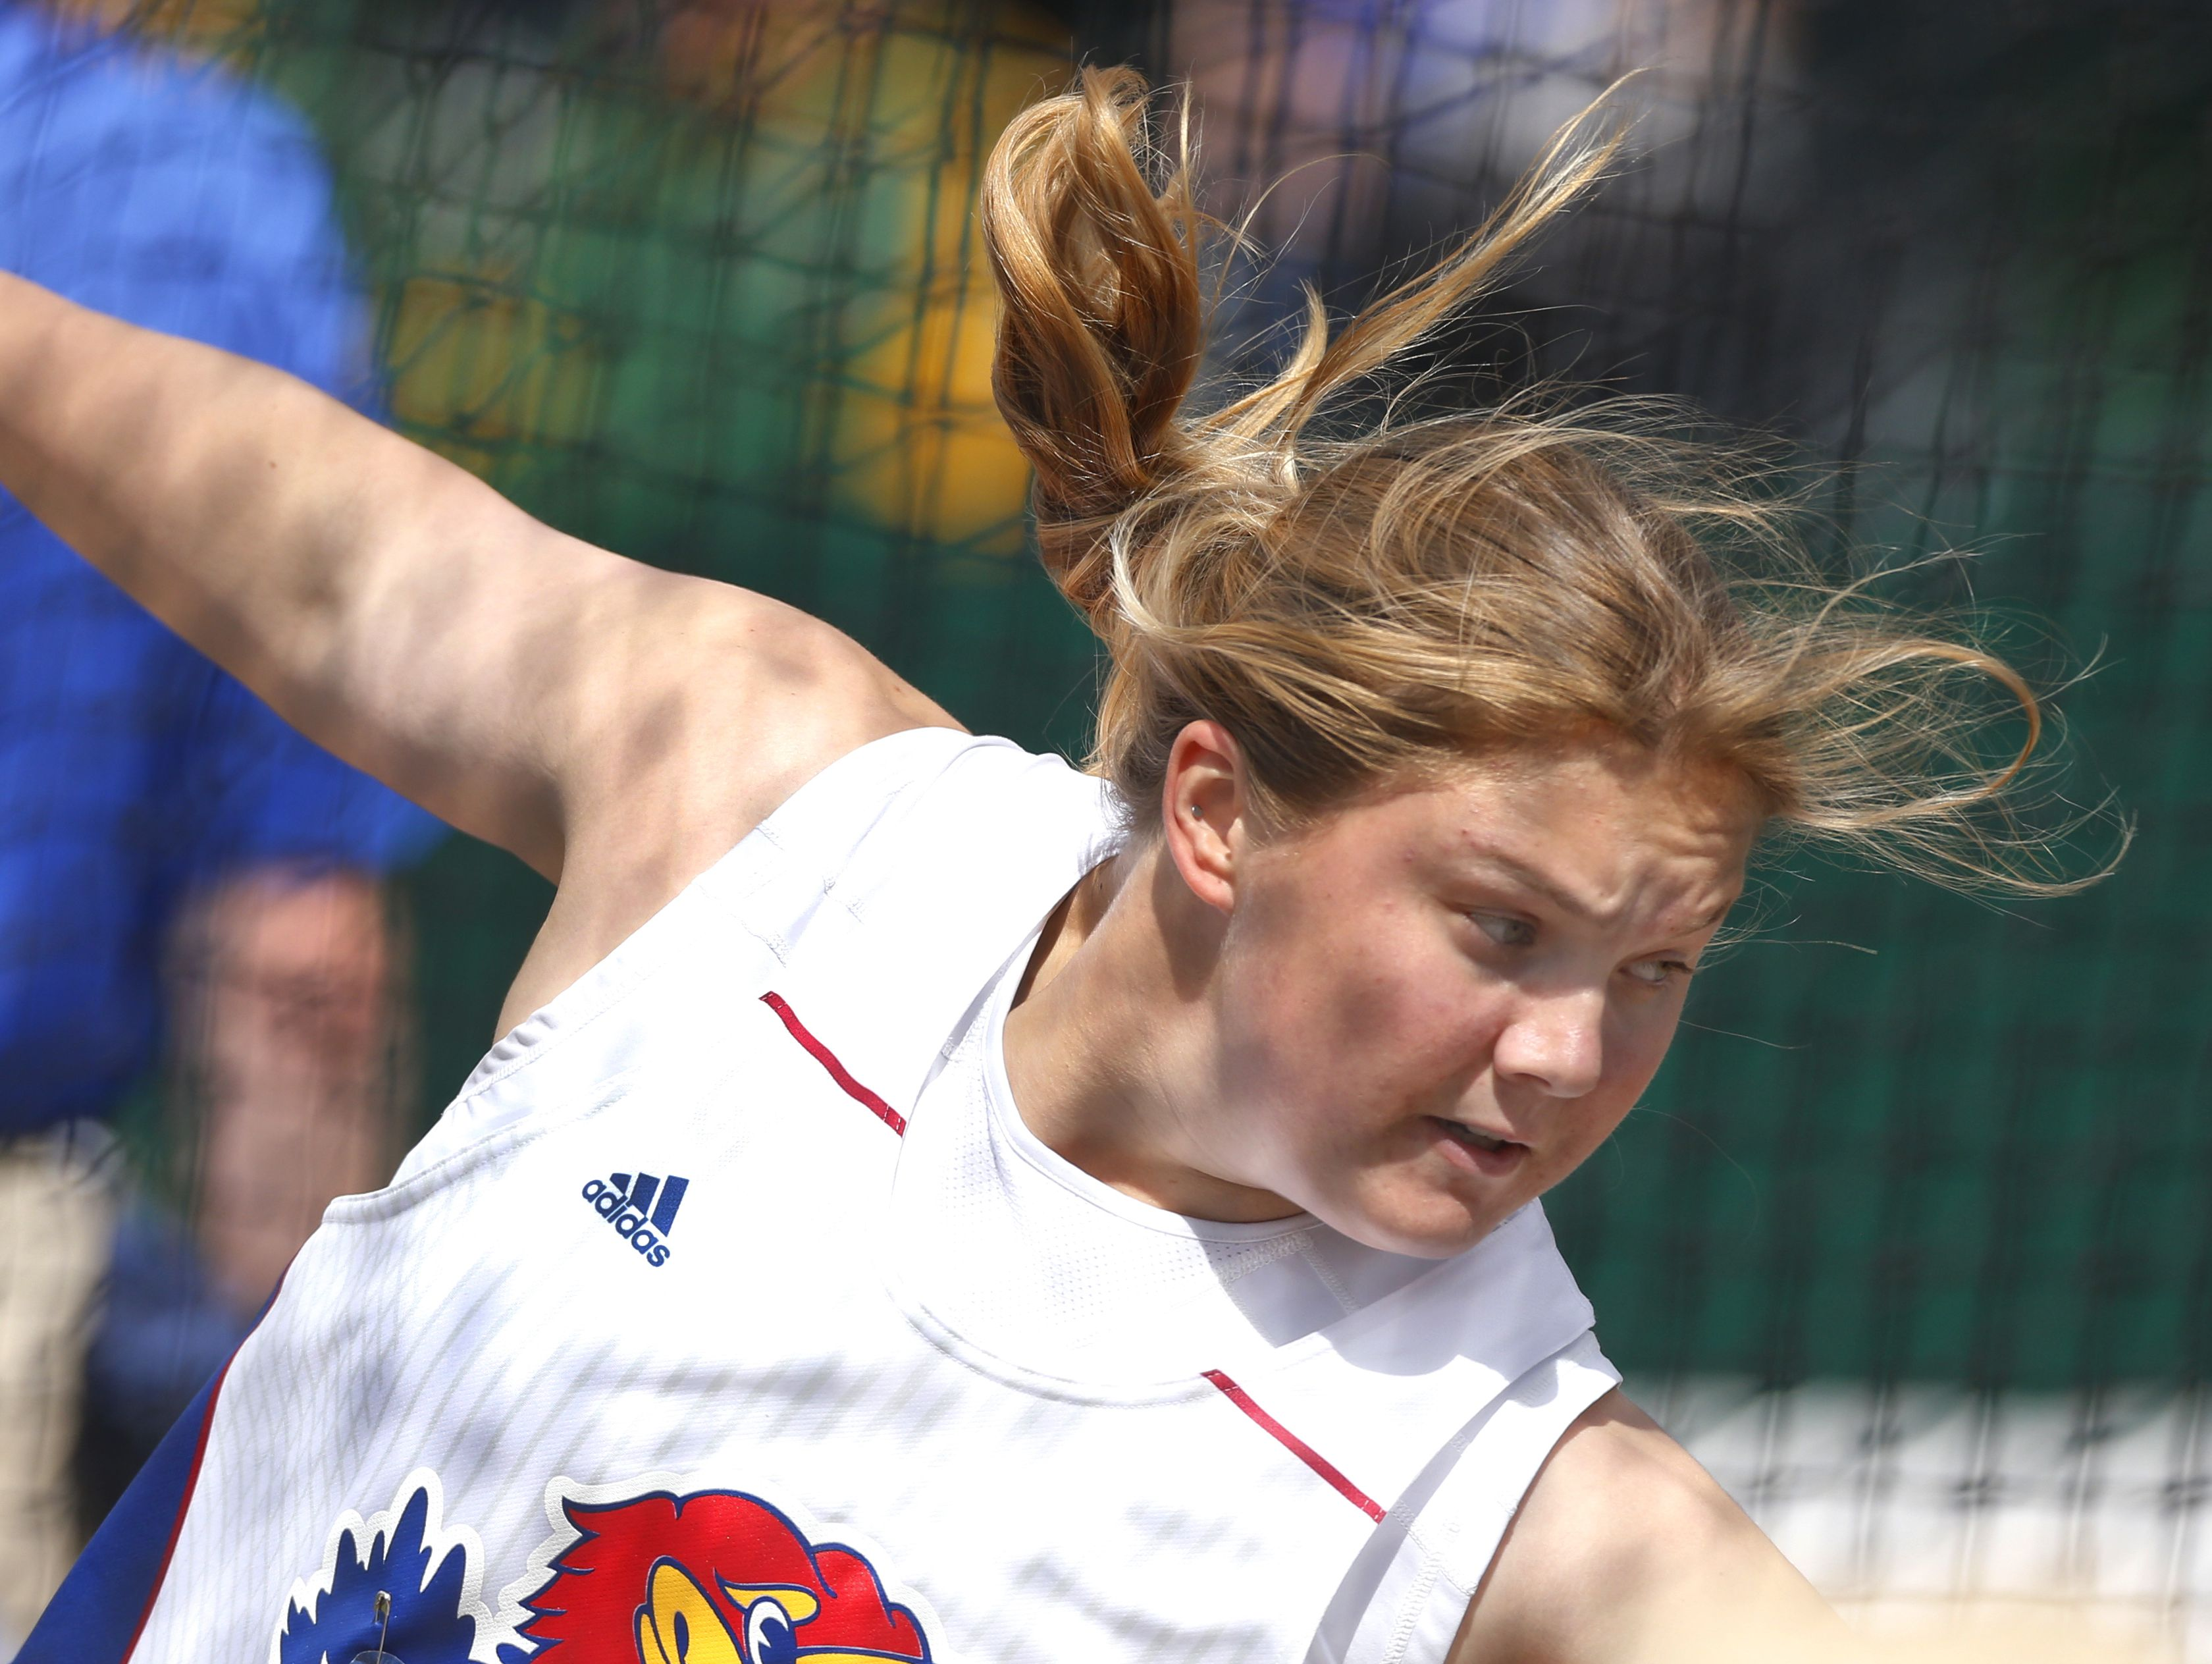 Seymour native Jessica Maroszek will be inducted tot he Wisconsin Track Coaches Association Hall of Fame on Saturday in Middleton. Maroszek helped the University of Kansas women's track and field team win the 2013 NCAA Division I national championship and has competed at the U.S. Olympic trials in 2012 and 2016.